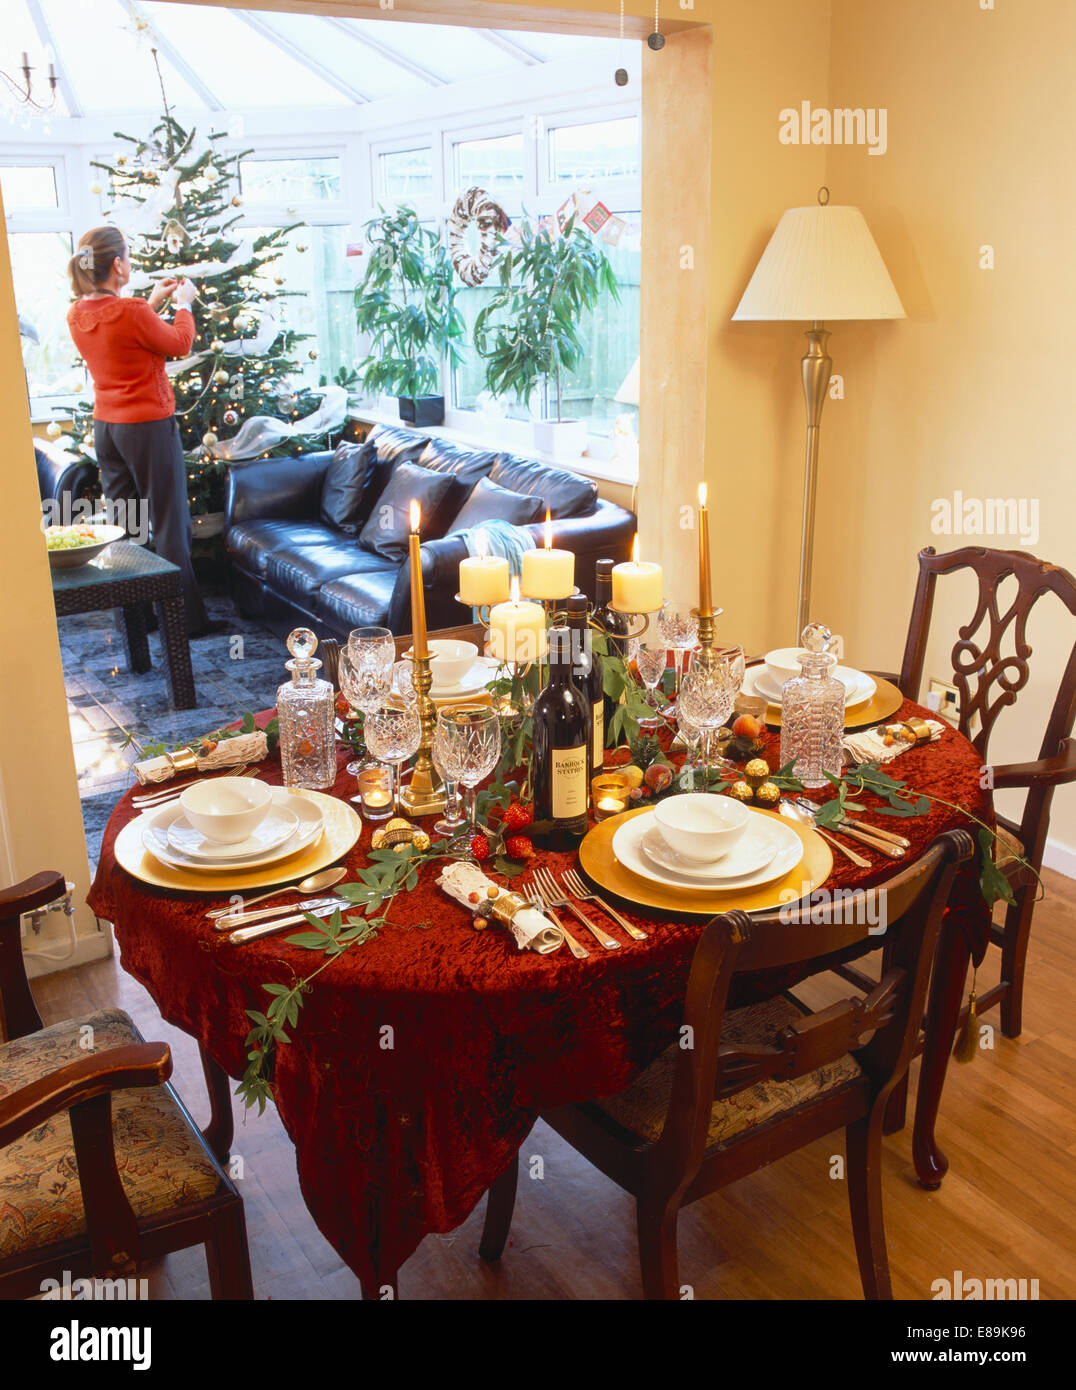 Table Decorated And Set For Christmas Dinner In